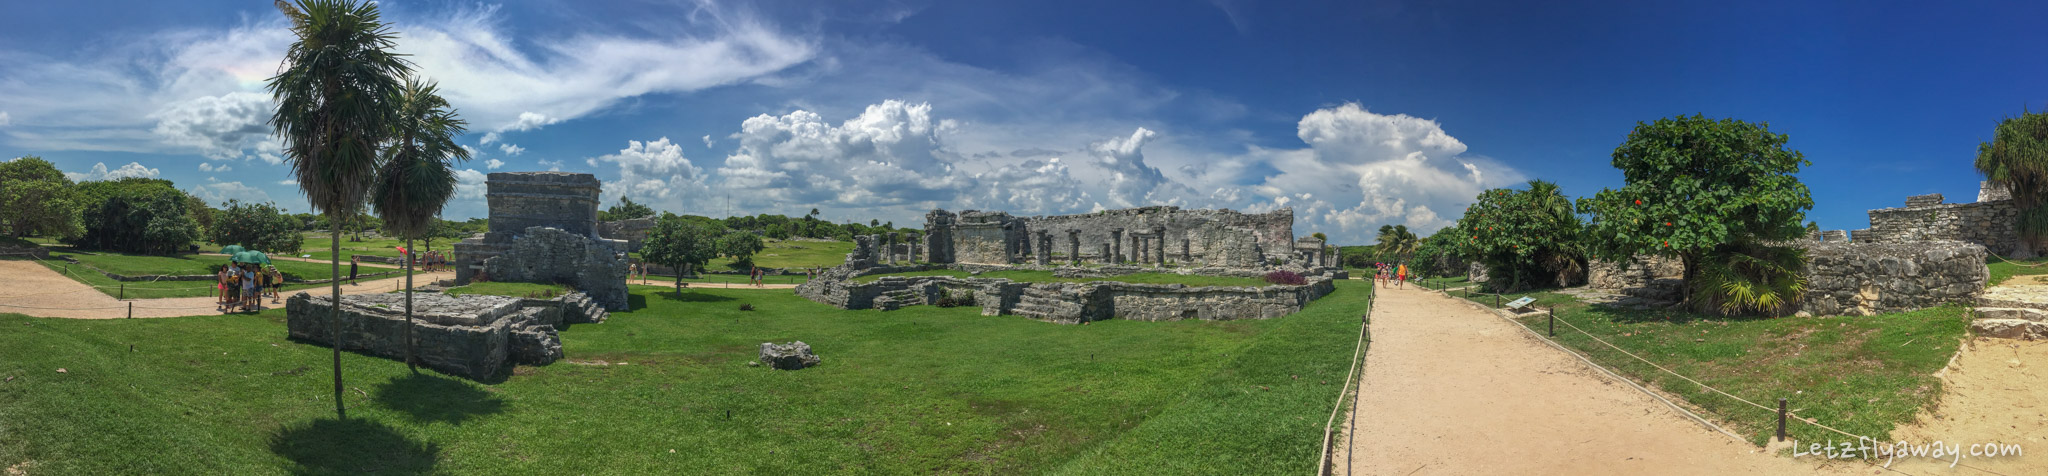 Playa del Carmen with Kids tulum archeological site